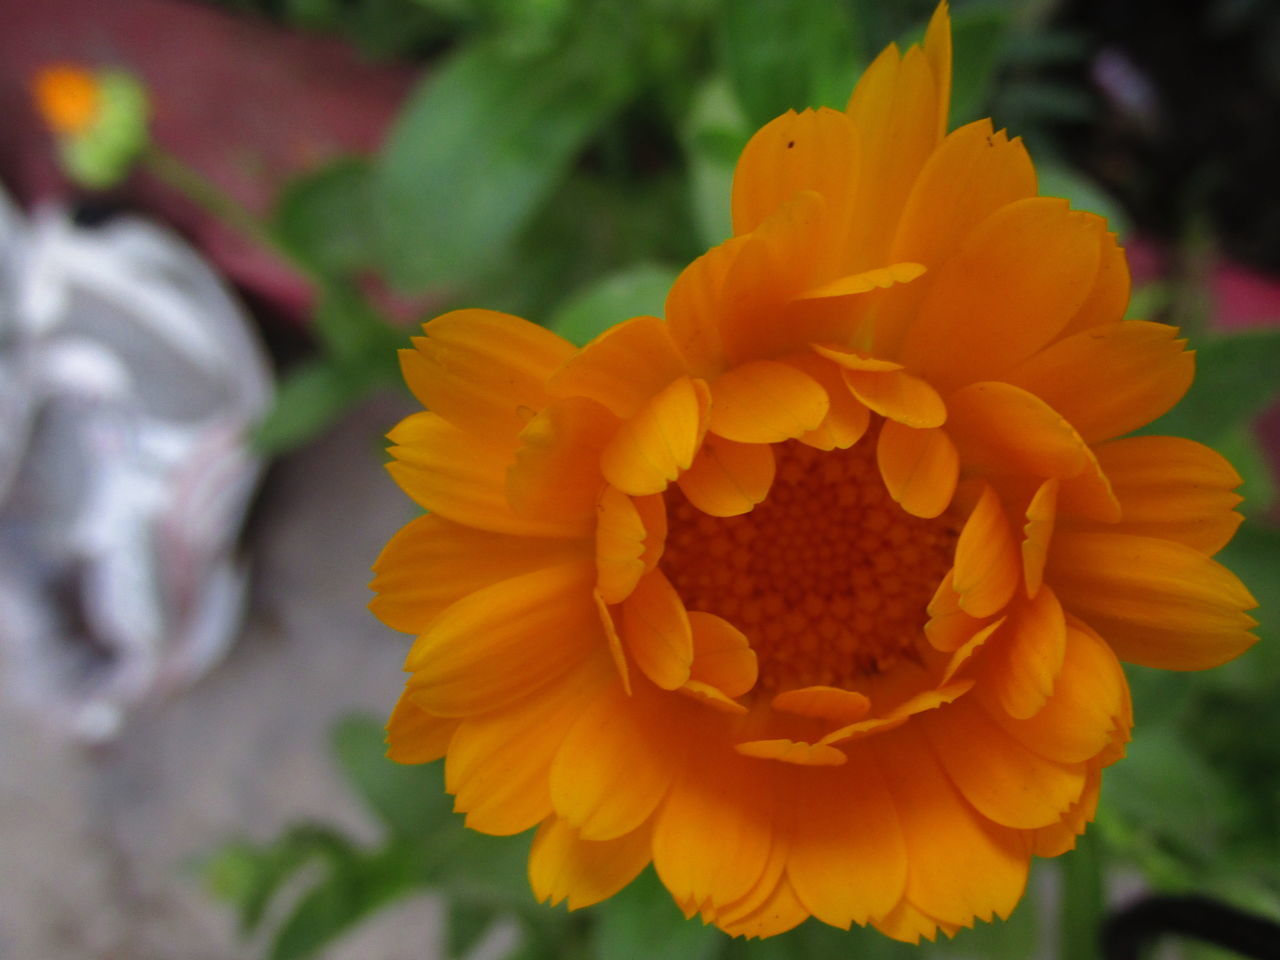 flower, petal, flower head, fragility, beauty in nature, nature, freshness, plant, blooming, yellow, growth, close-up, focus on foreground, outdoors, day, park - man made space, no people